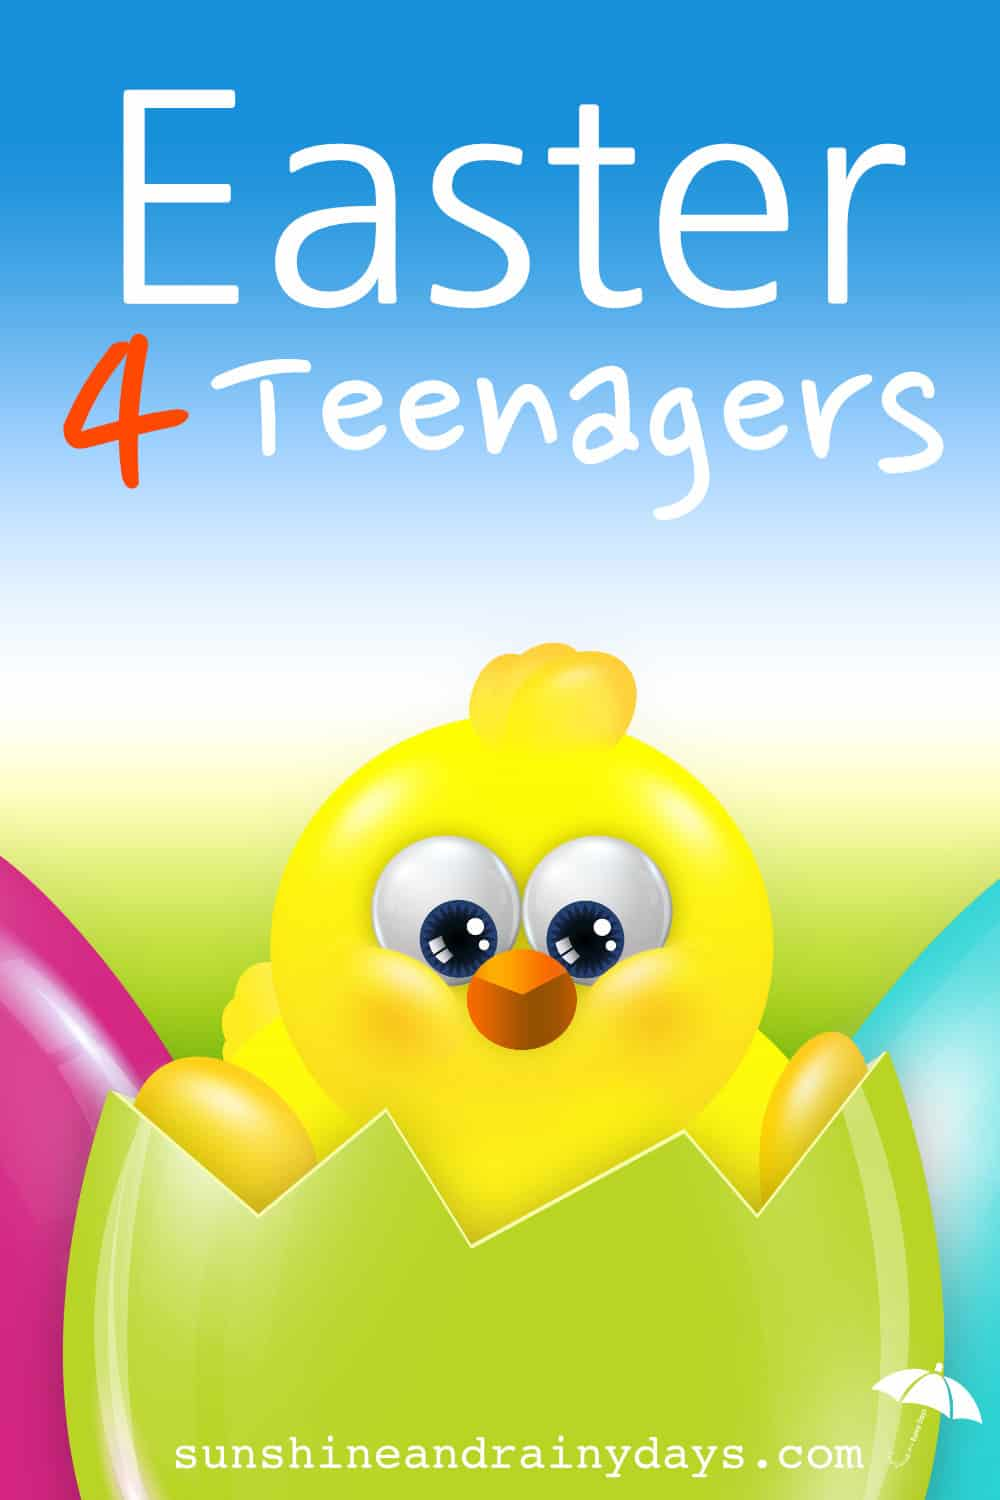 With Easter right around the corner, you may be wondering what to put in that Easter basket. When the kids were young, it was easy to grab a Littlest Pet Shop and a Thomas train. Now that they are teenagers, the challenge is real. Easter for teenagers can still be fun!